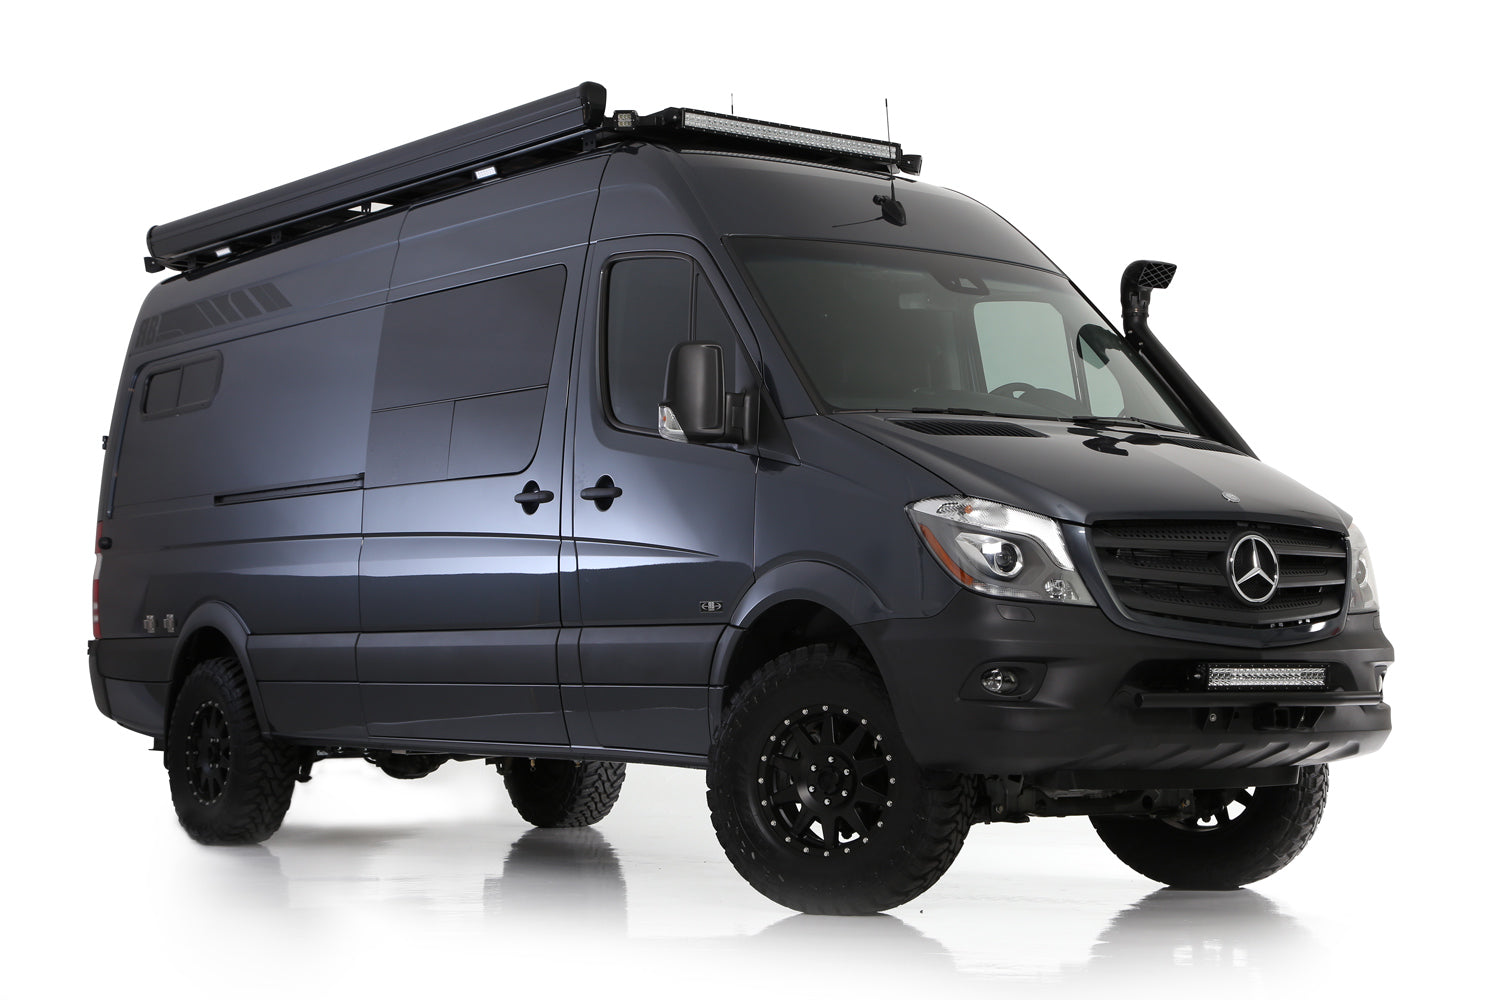 RB Touring Van Sawtooth 04 - 170